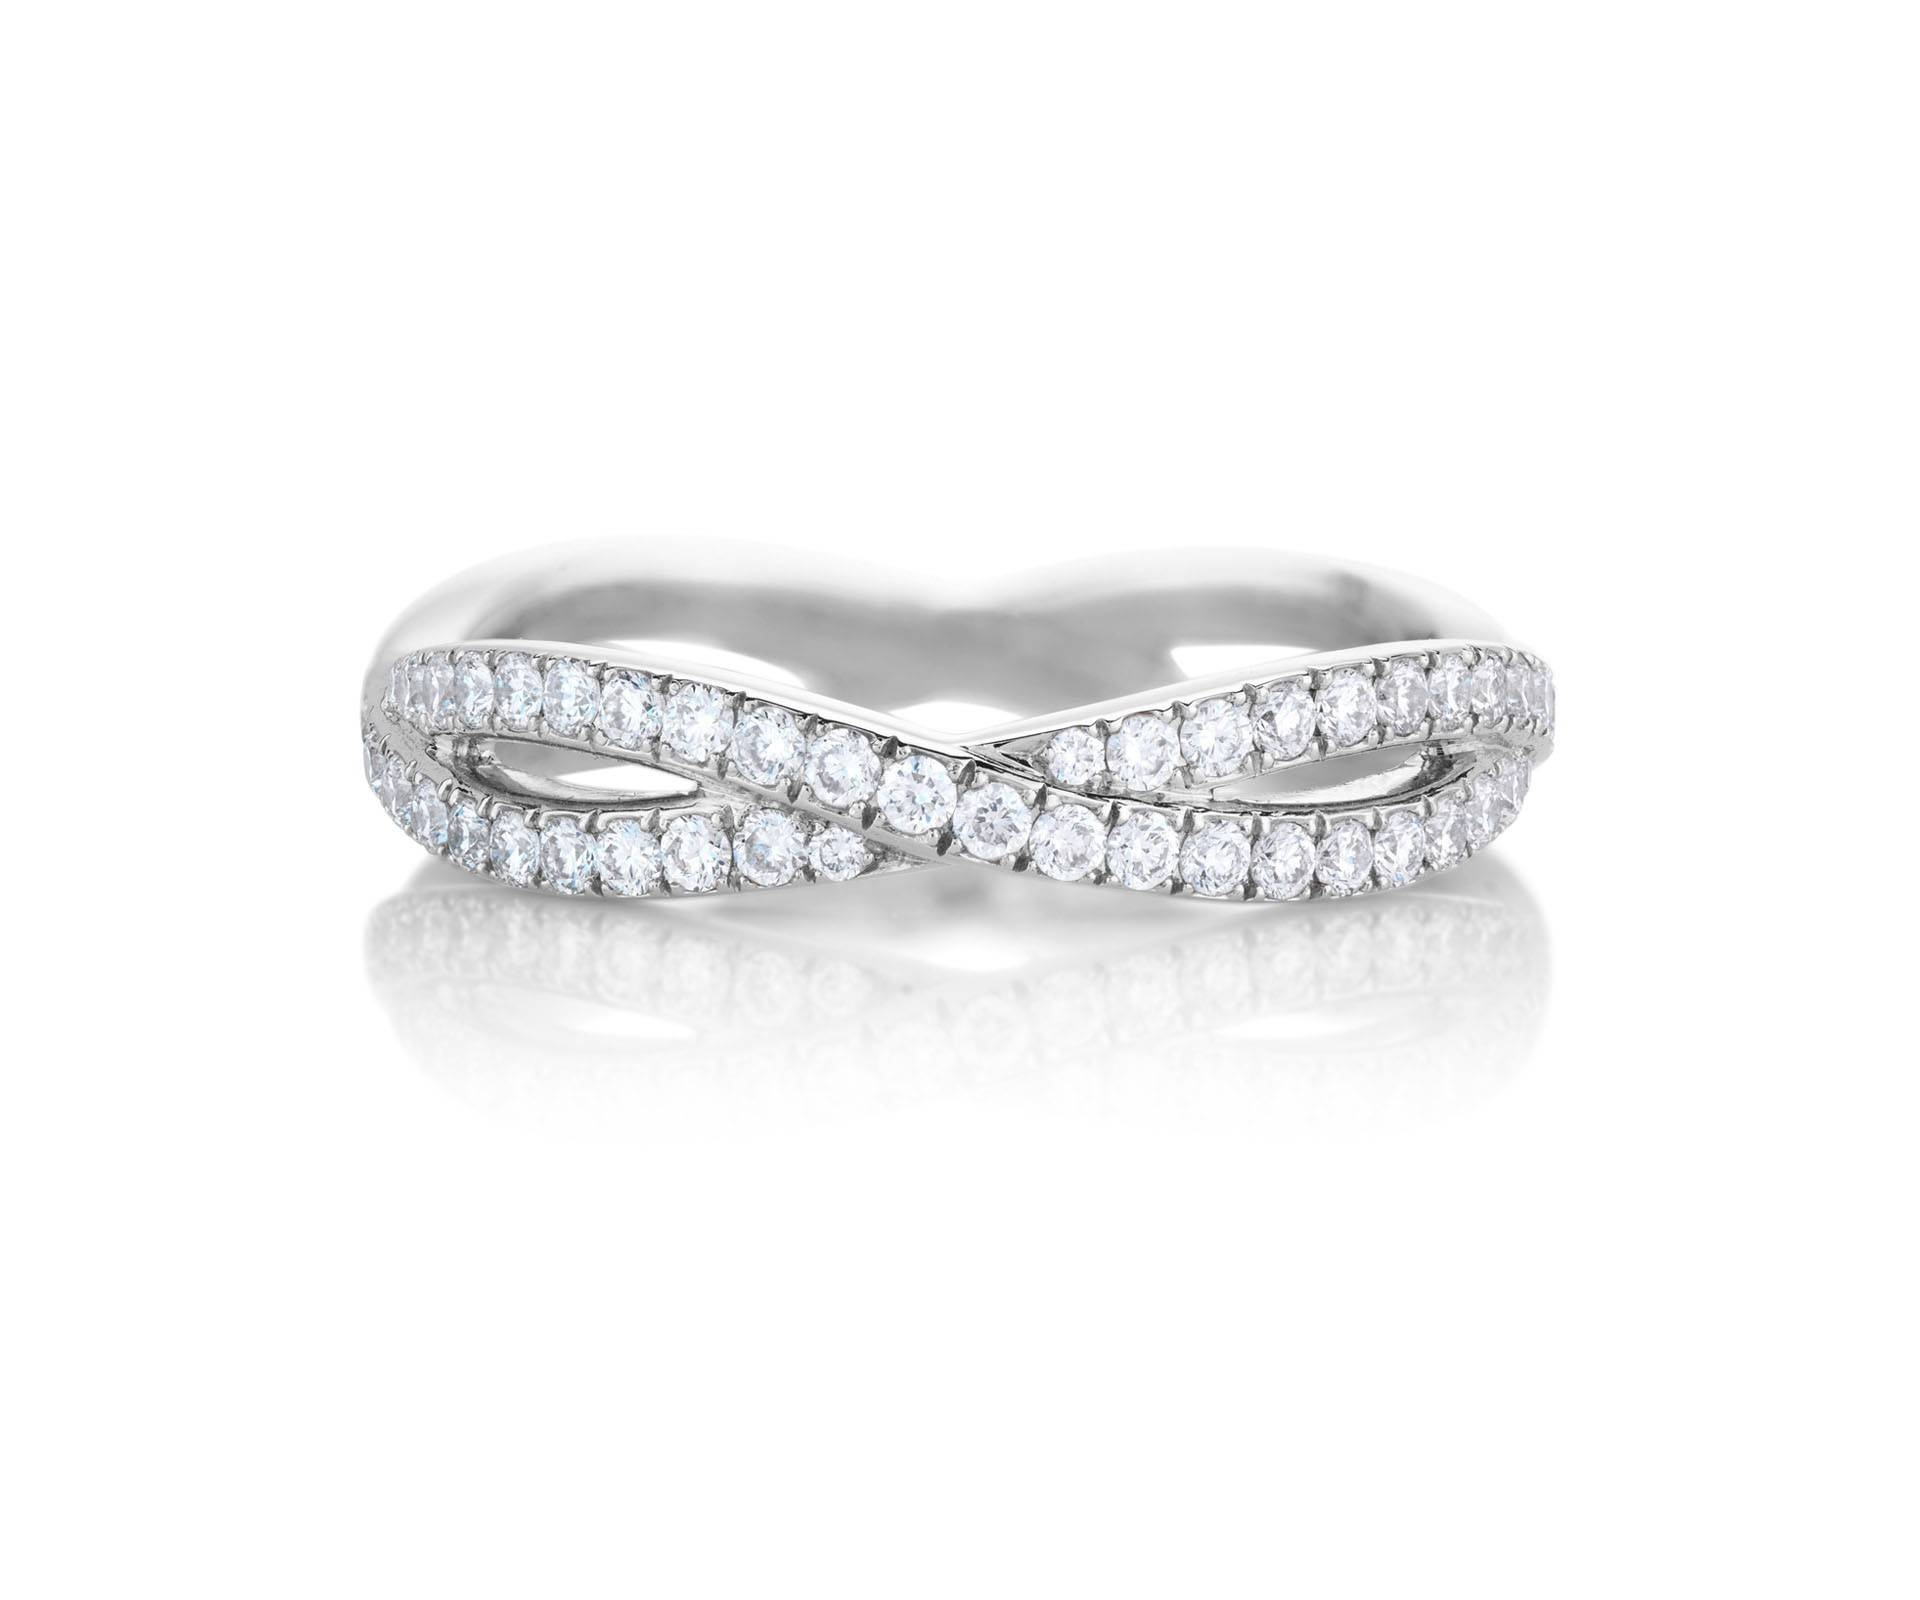 Infinity White Gold Full Pavé Band J1Fu08Z00W | De Beers Intended For Wedding Band For Infinity Engagement Rings (Gallery 15 of 15)